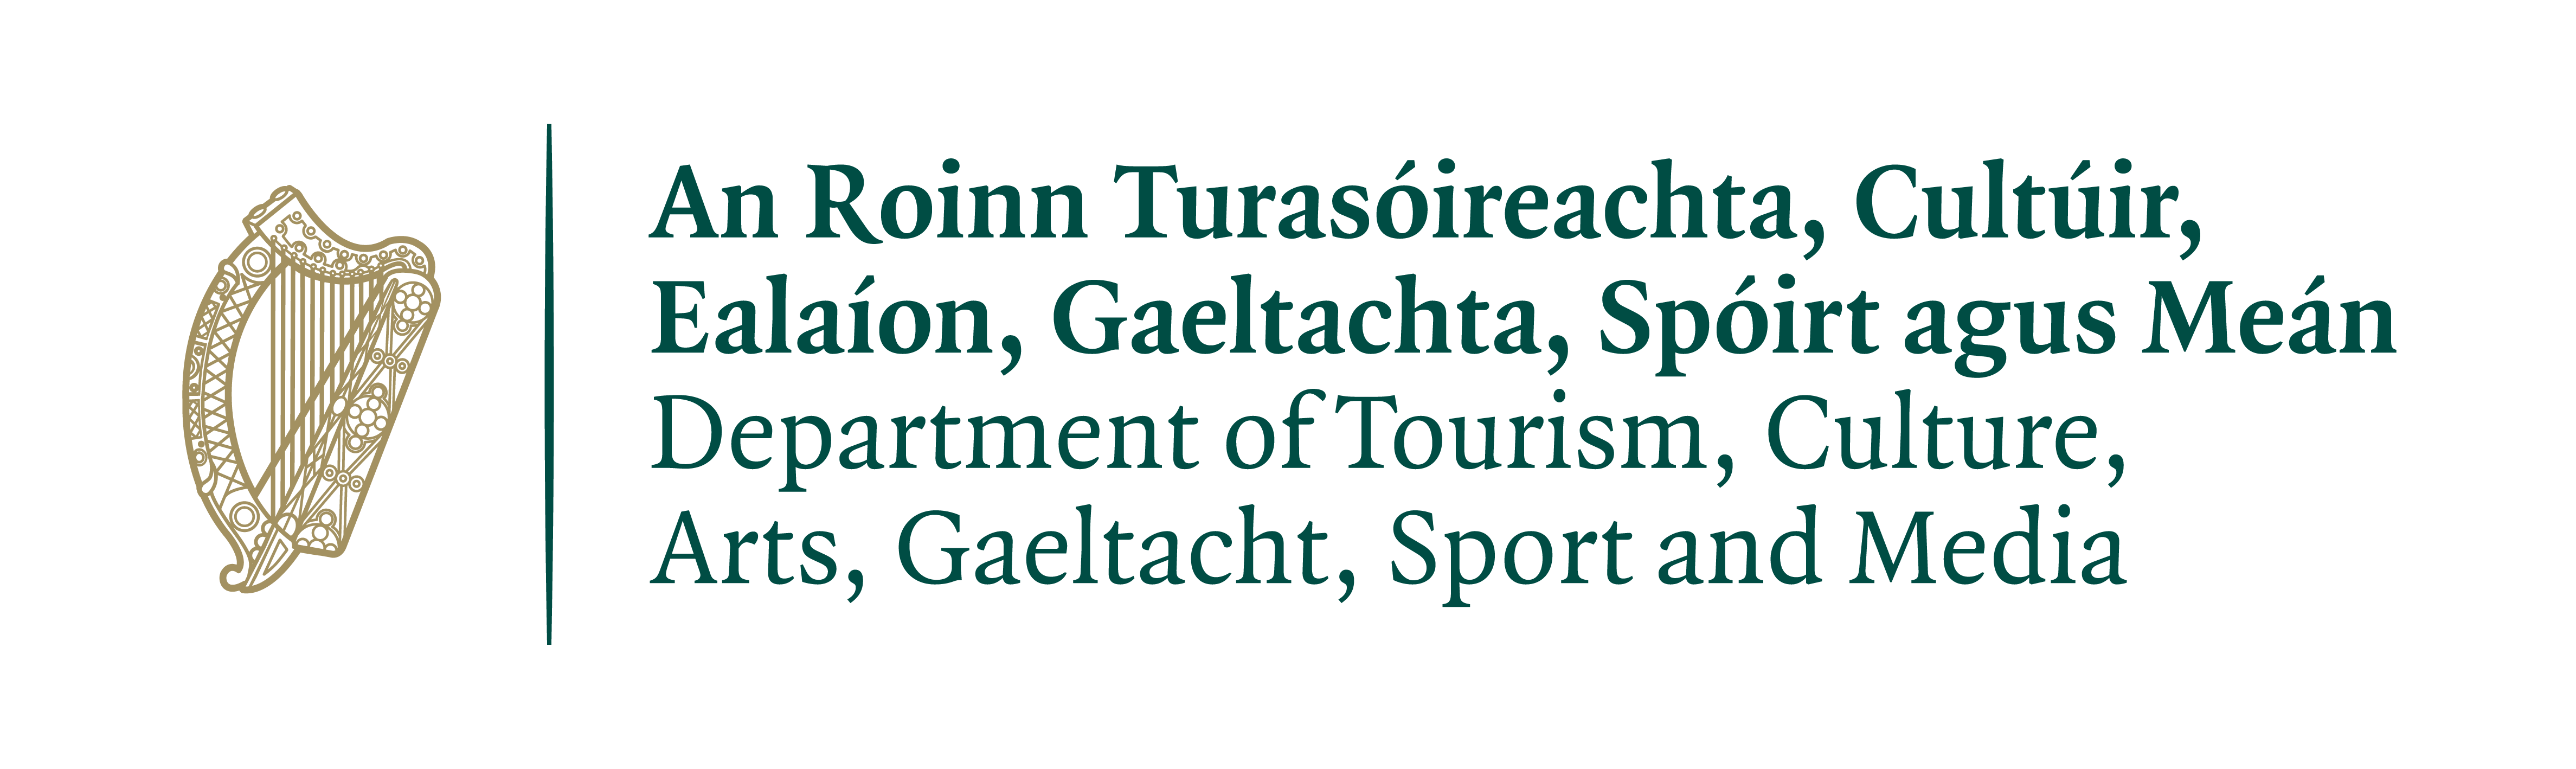 Department of Tourism, Culture, Arts, Gaeltacht, Sport and Media Logo